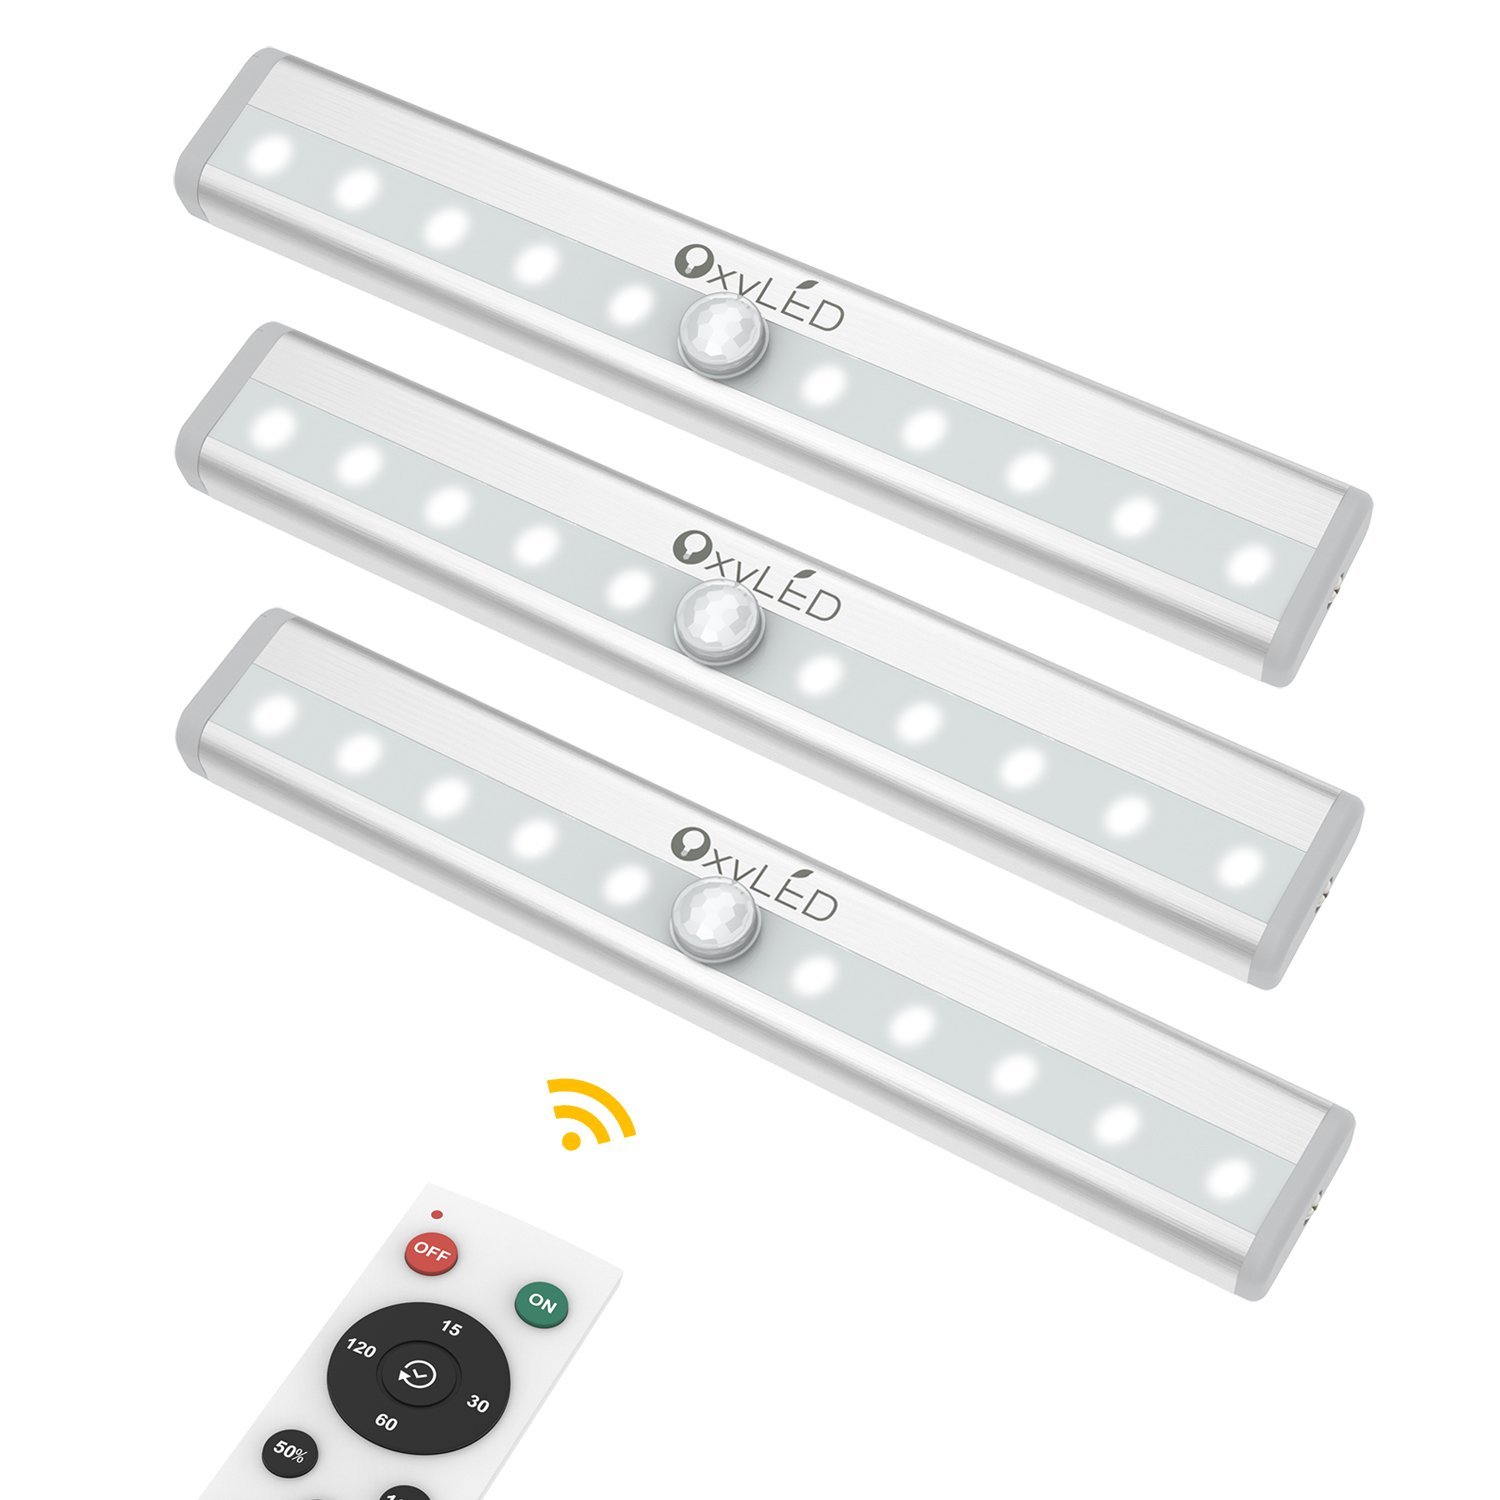 Closet Lights with Remote Control, OxyLED 3-Pack Battery Operated Night Lights Cordless Under Cabinet Lighting, Stick-on Wireless 10 LED Night Light Bar for Bookshelf, Wardrobe, Hallway, Stairway